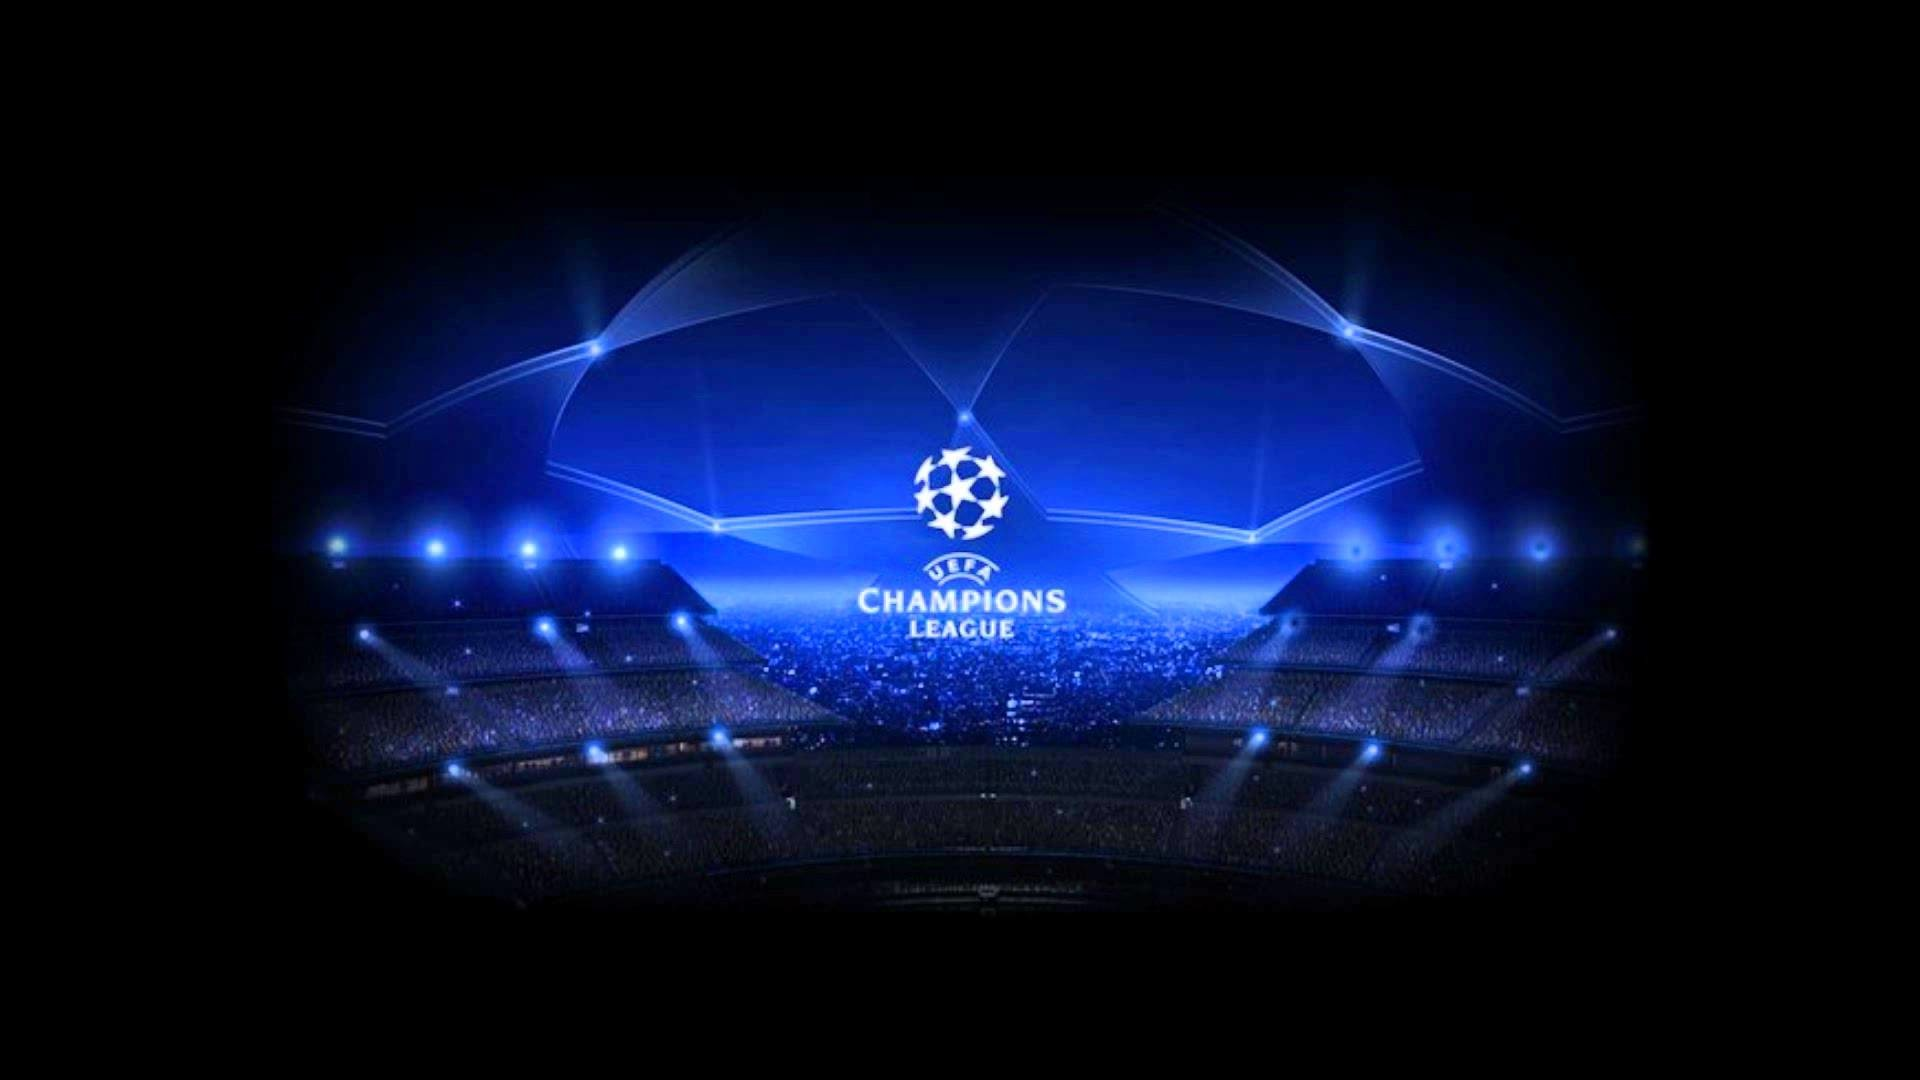 Champions Image: Uefa Champions League Wallpaper (73+ Images